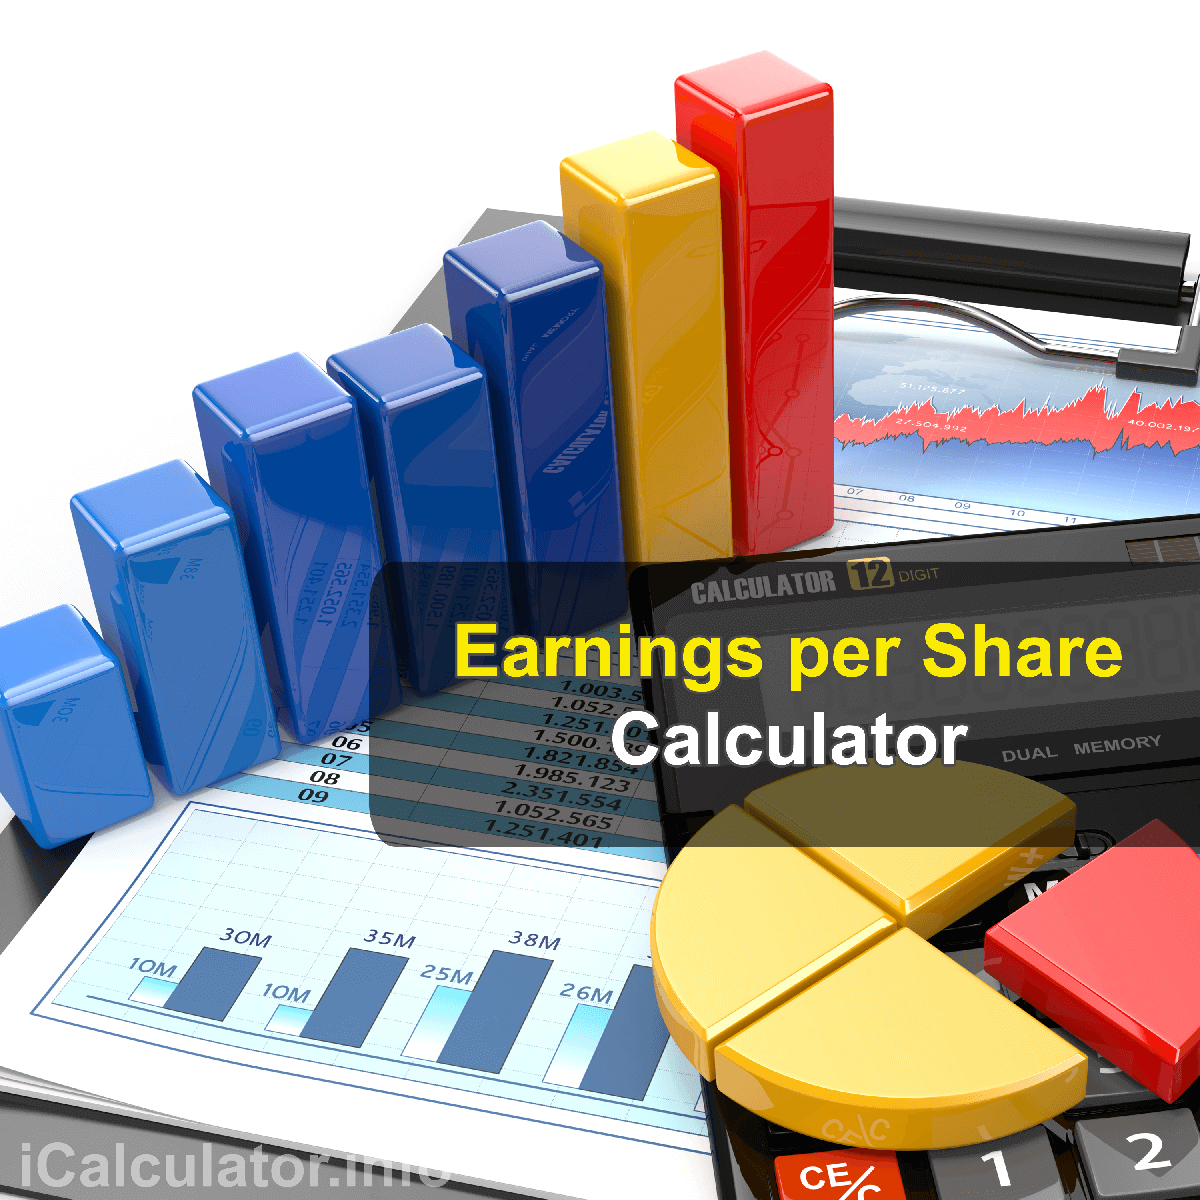 Earnings Per Share Calculator. This image shows a man learning how to calculate earnings per share using a calculator and notepad. By using the earnings per share formula, the EPS Calculator provides a true calculation of company's profit allocation to each share of common stock.